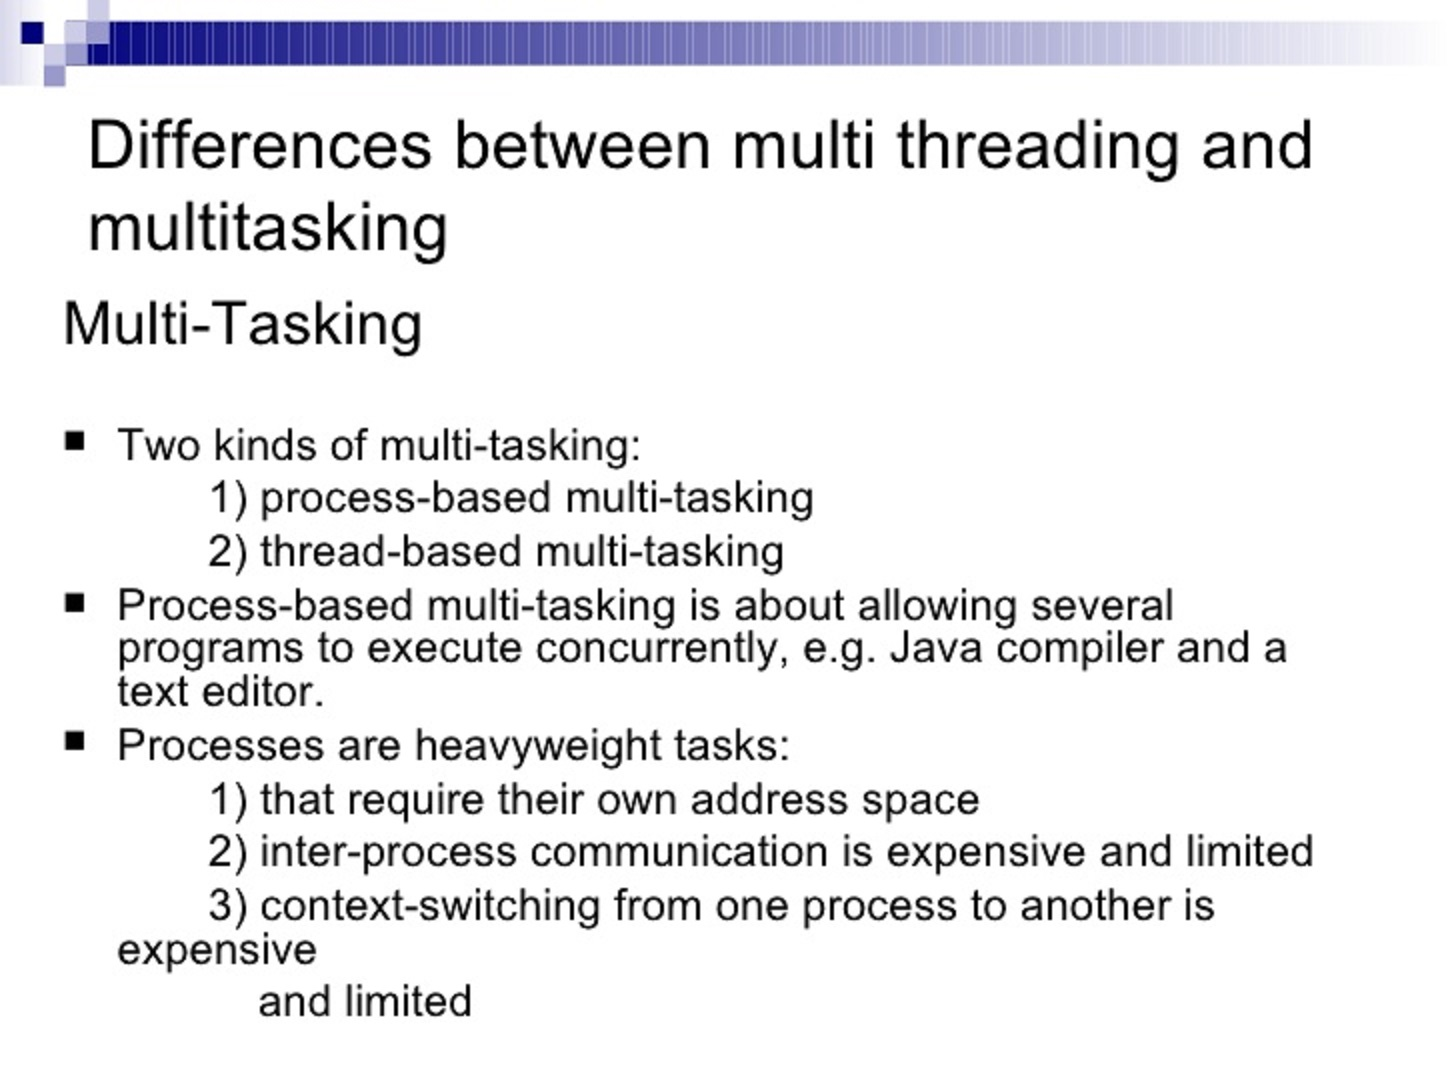 3 Key difference between multi-threading and multitasking